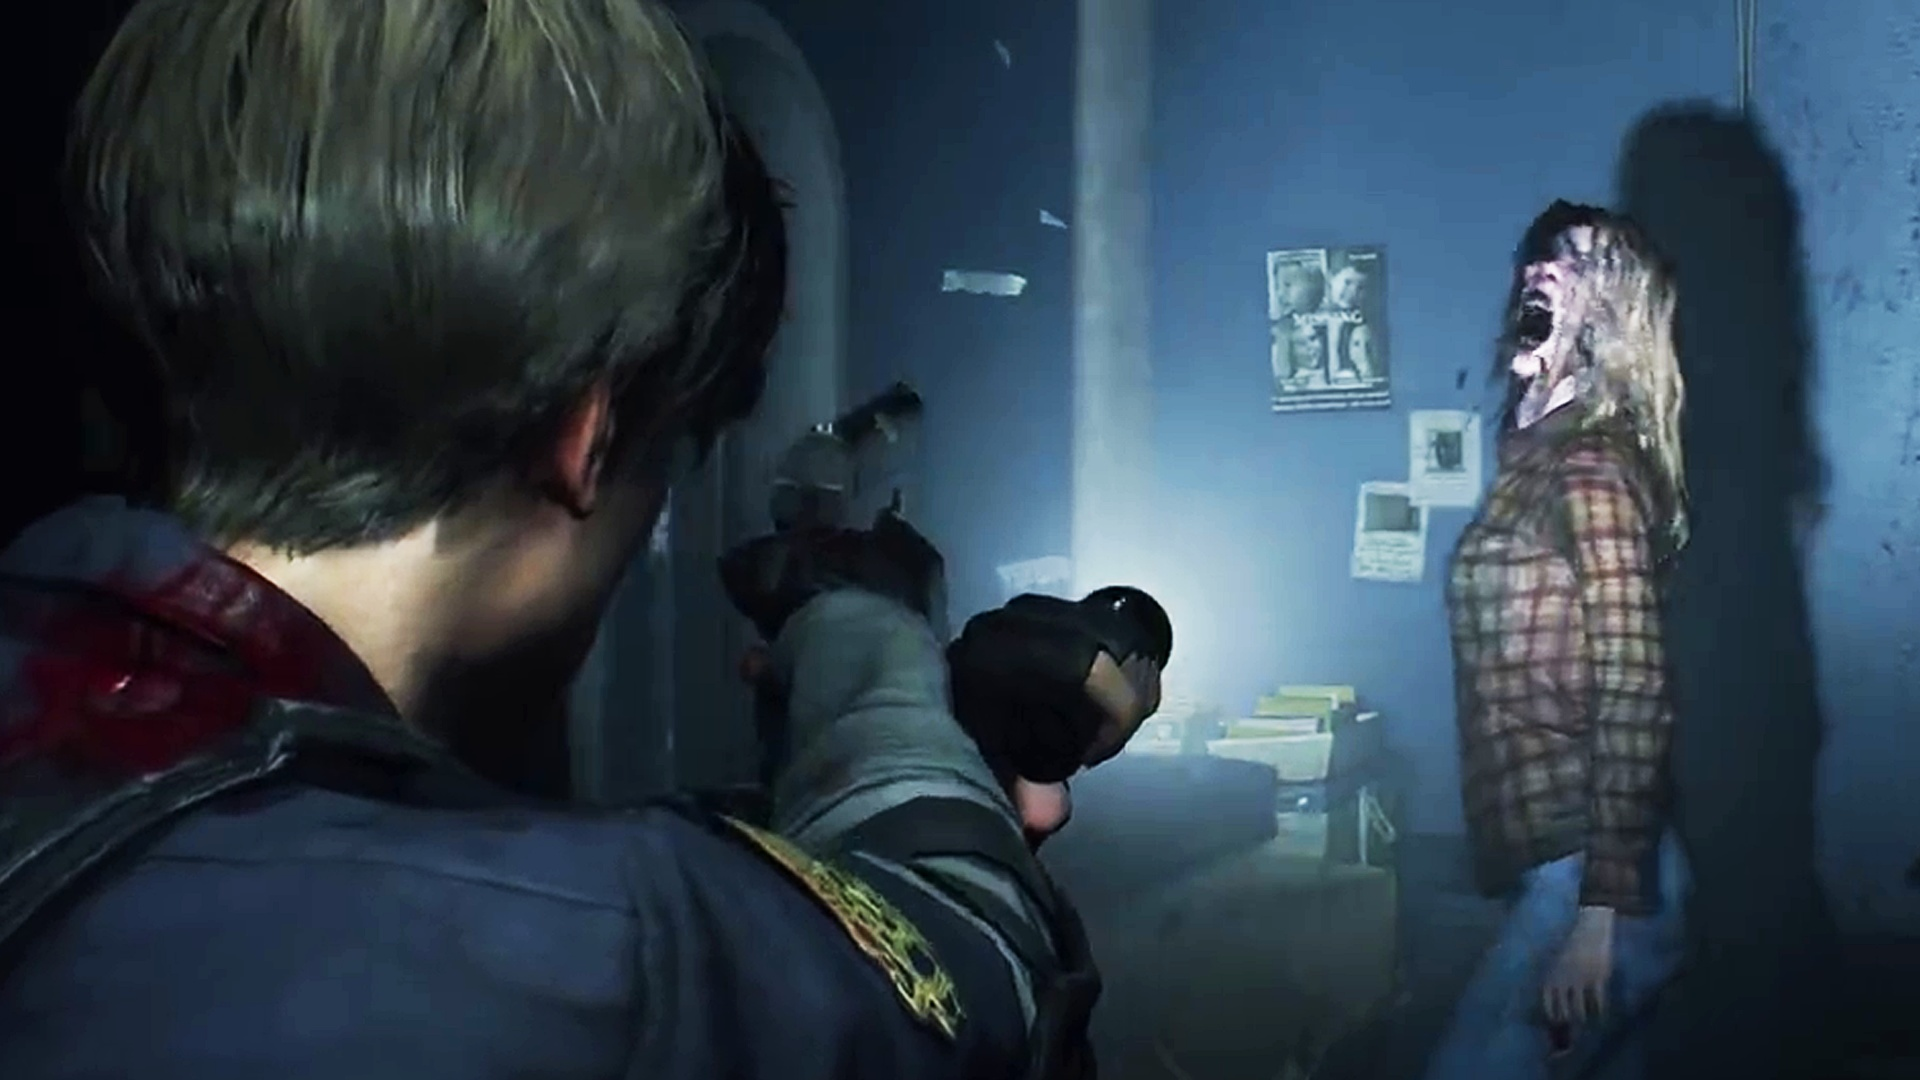 Resident Evil 2 Remake – PC Gameplay for the first time, in